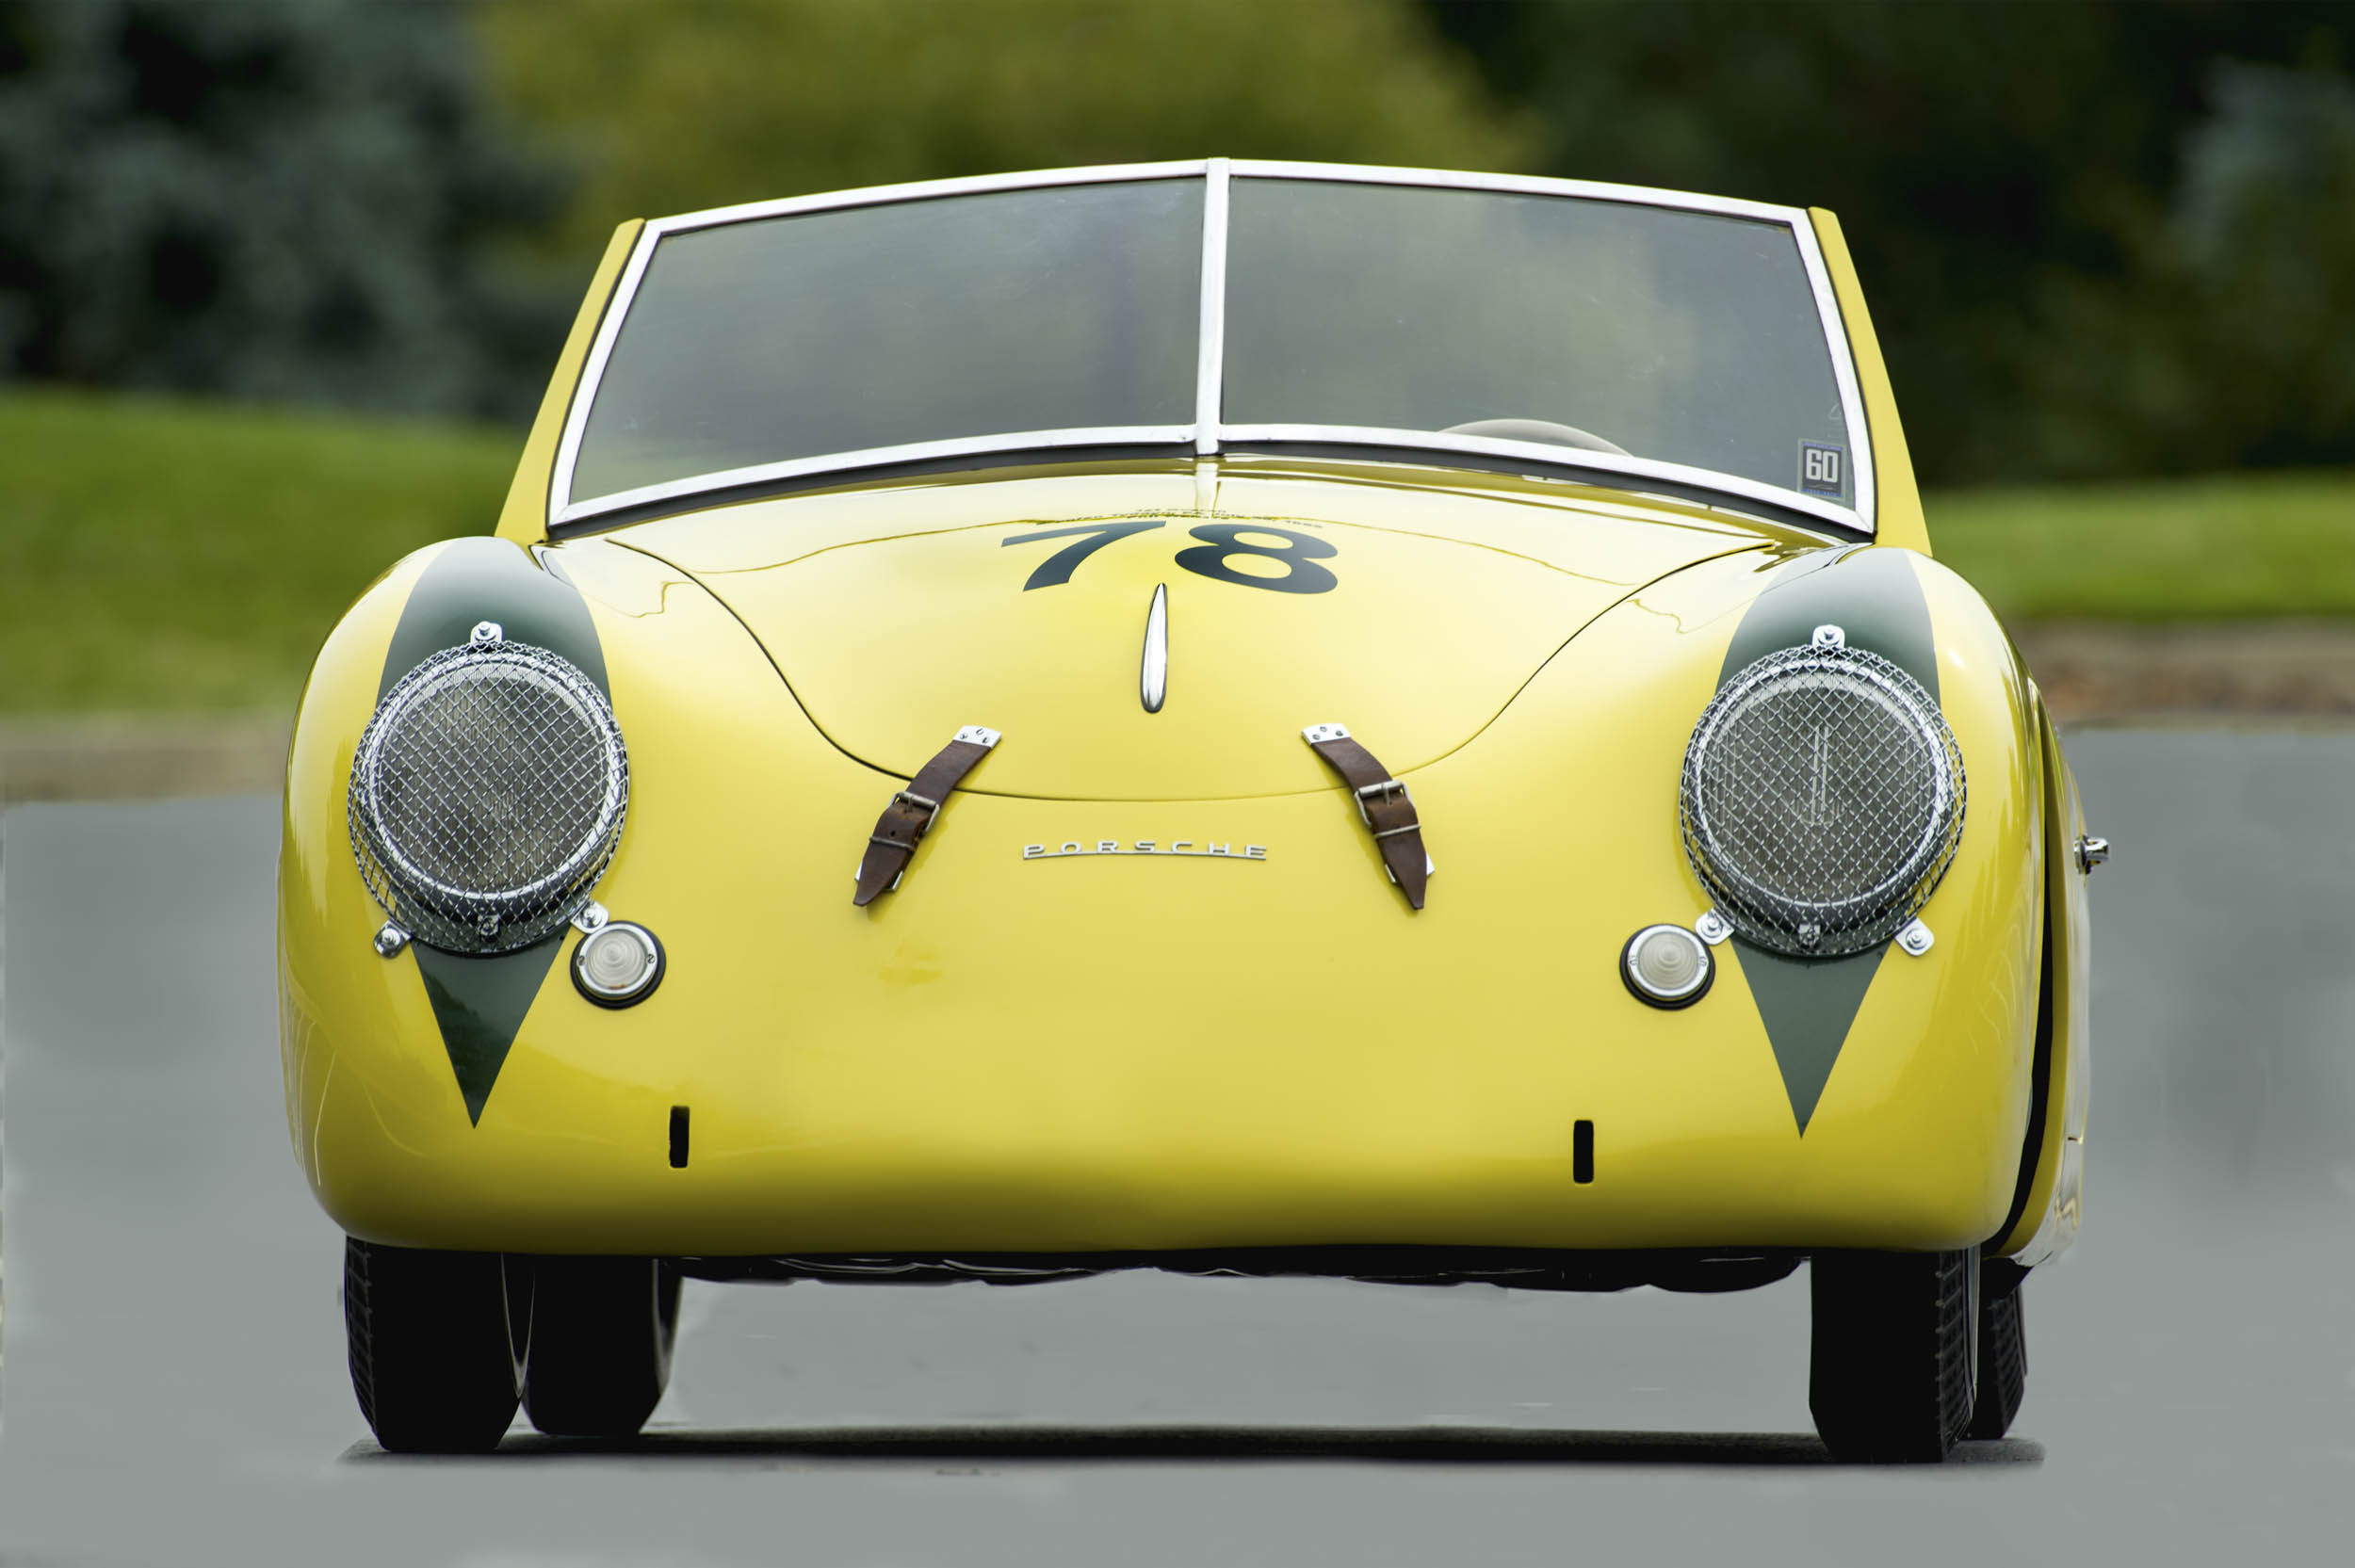 The Porsche America Roadster wore number 78 in the marque's first overall win. Today, that number graces the hood.